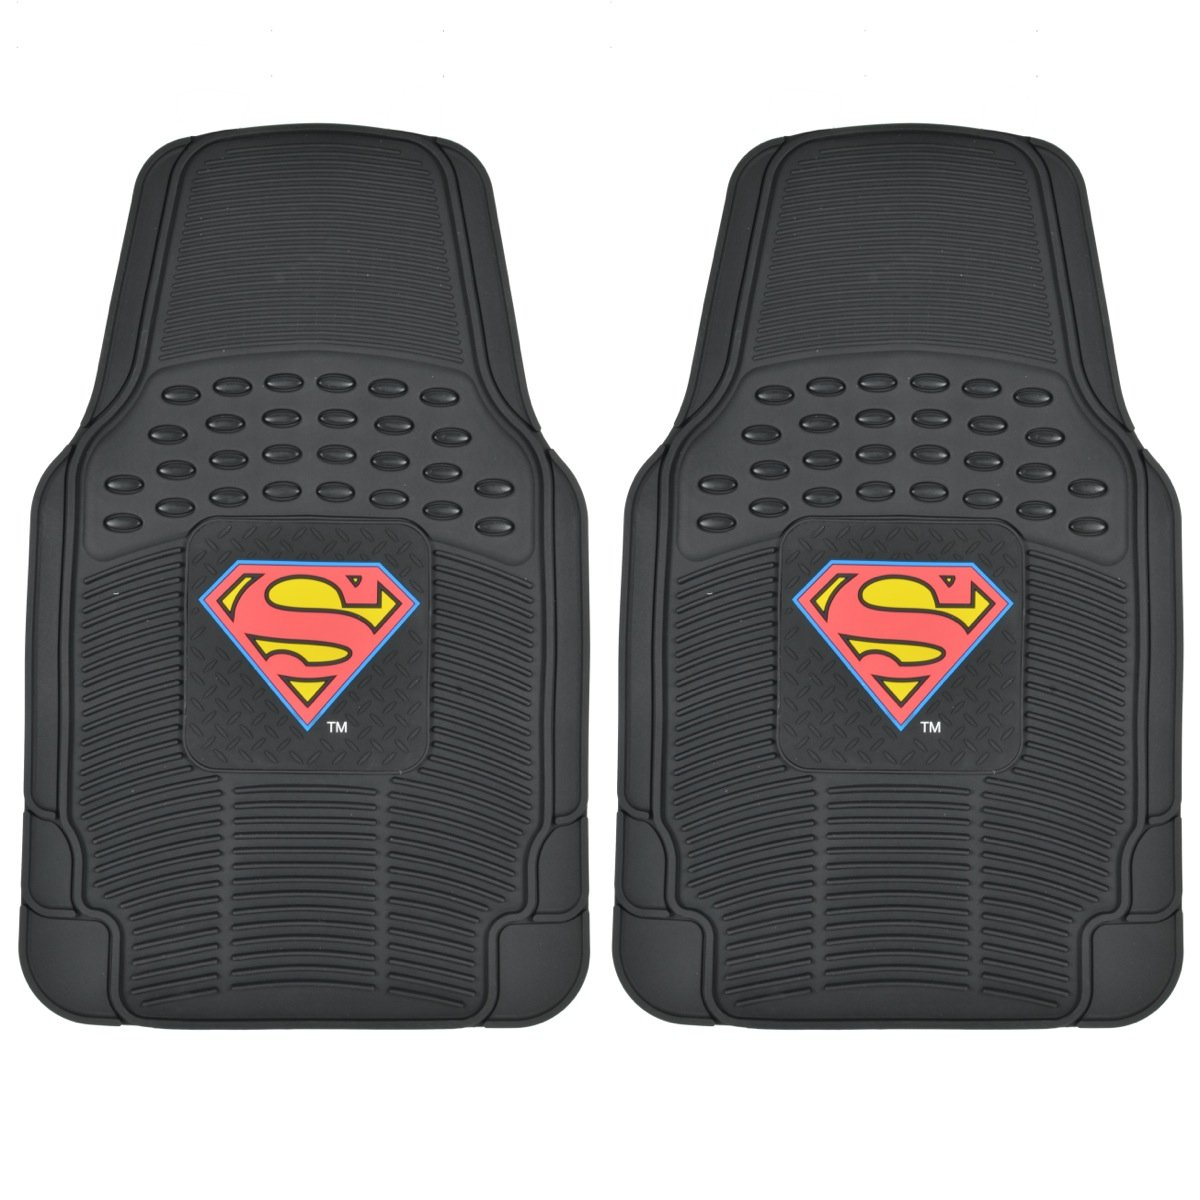 Officially Licensed Universal Fit All Weather Rubber Floor Mats Batman